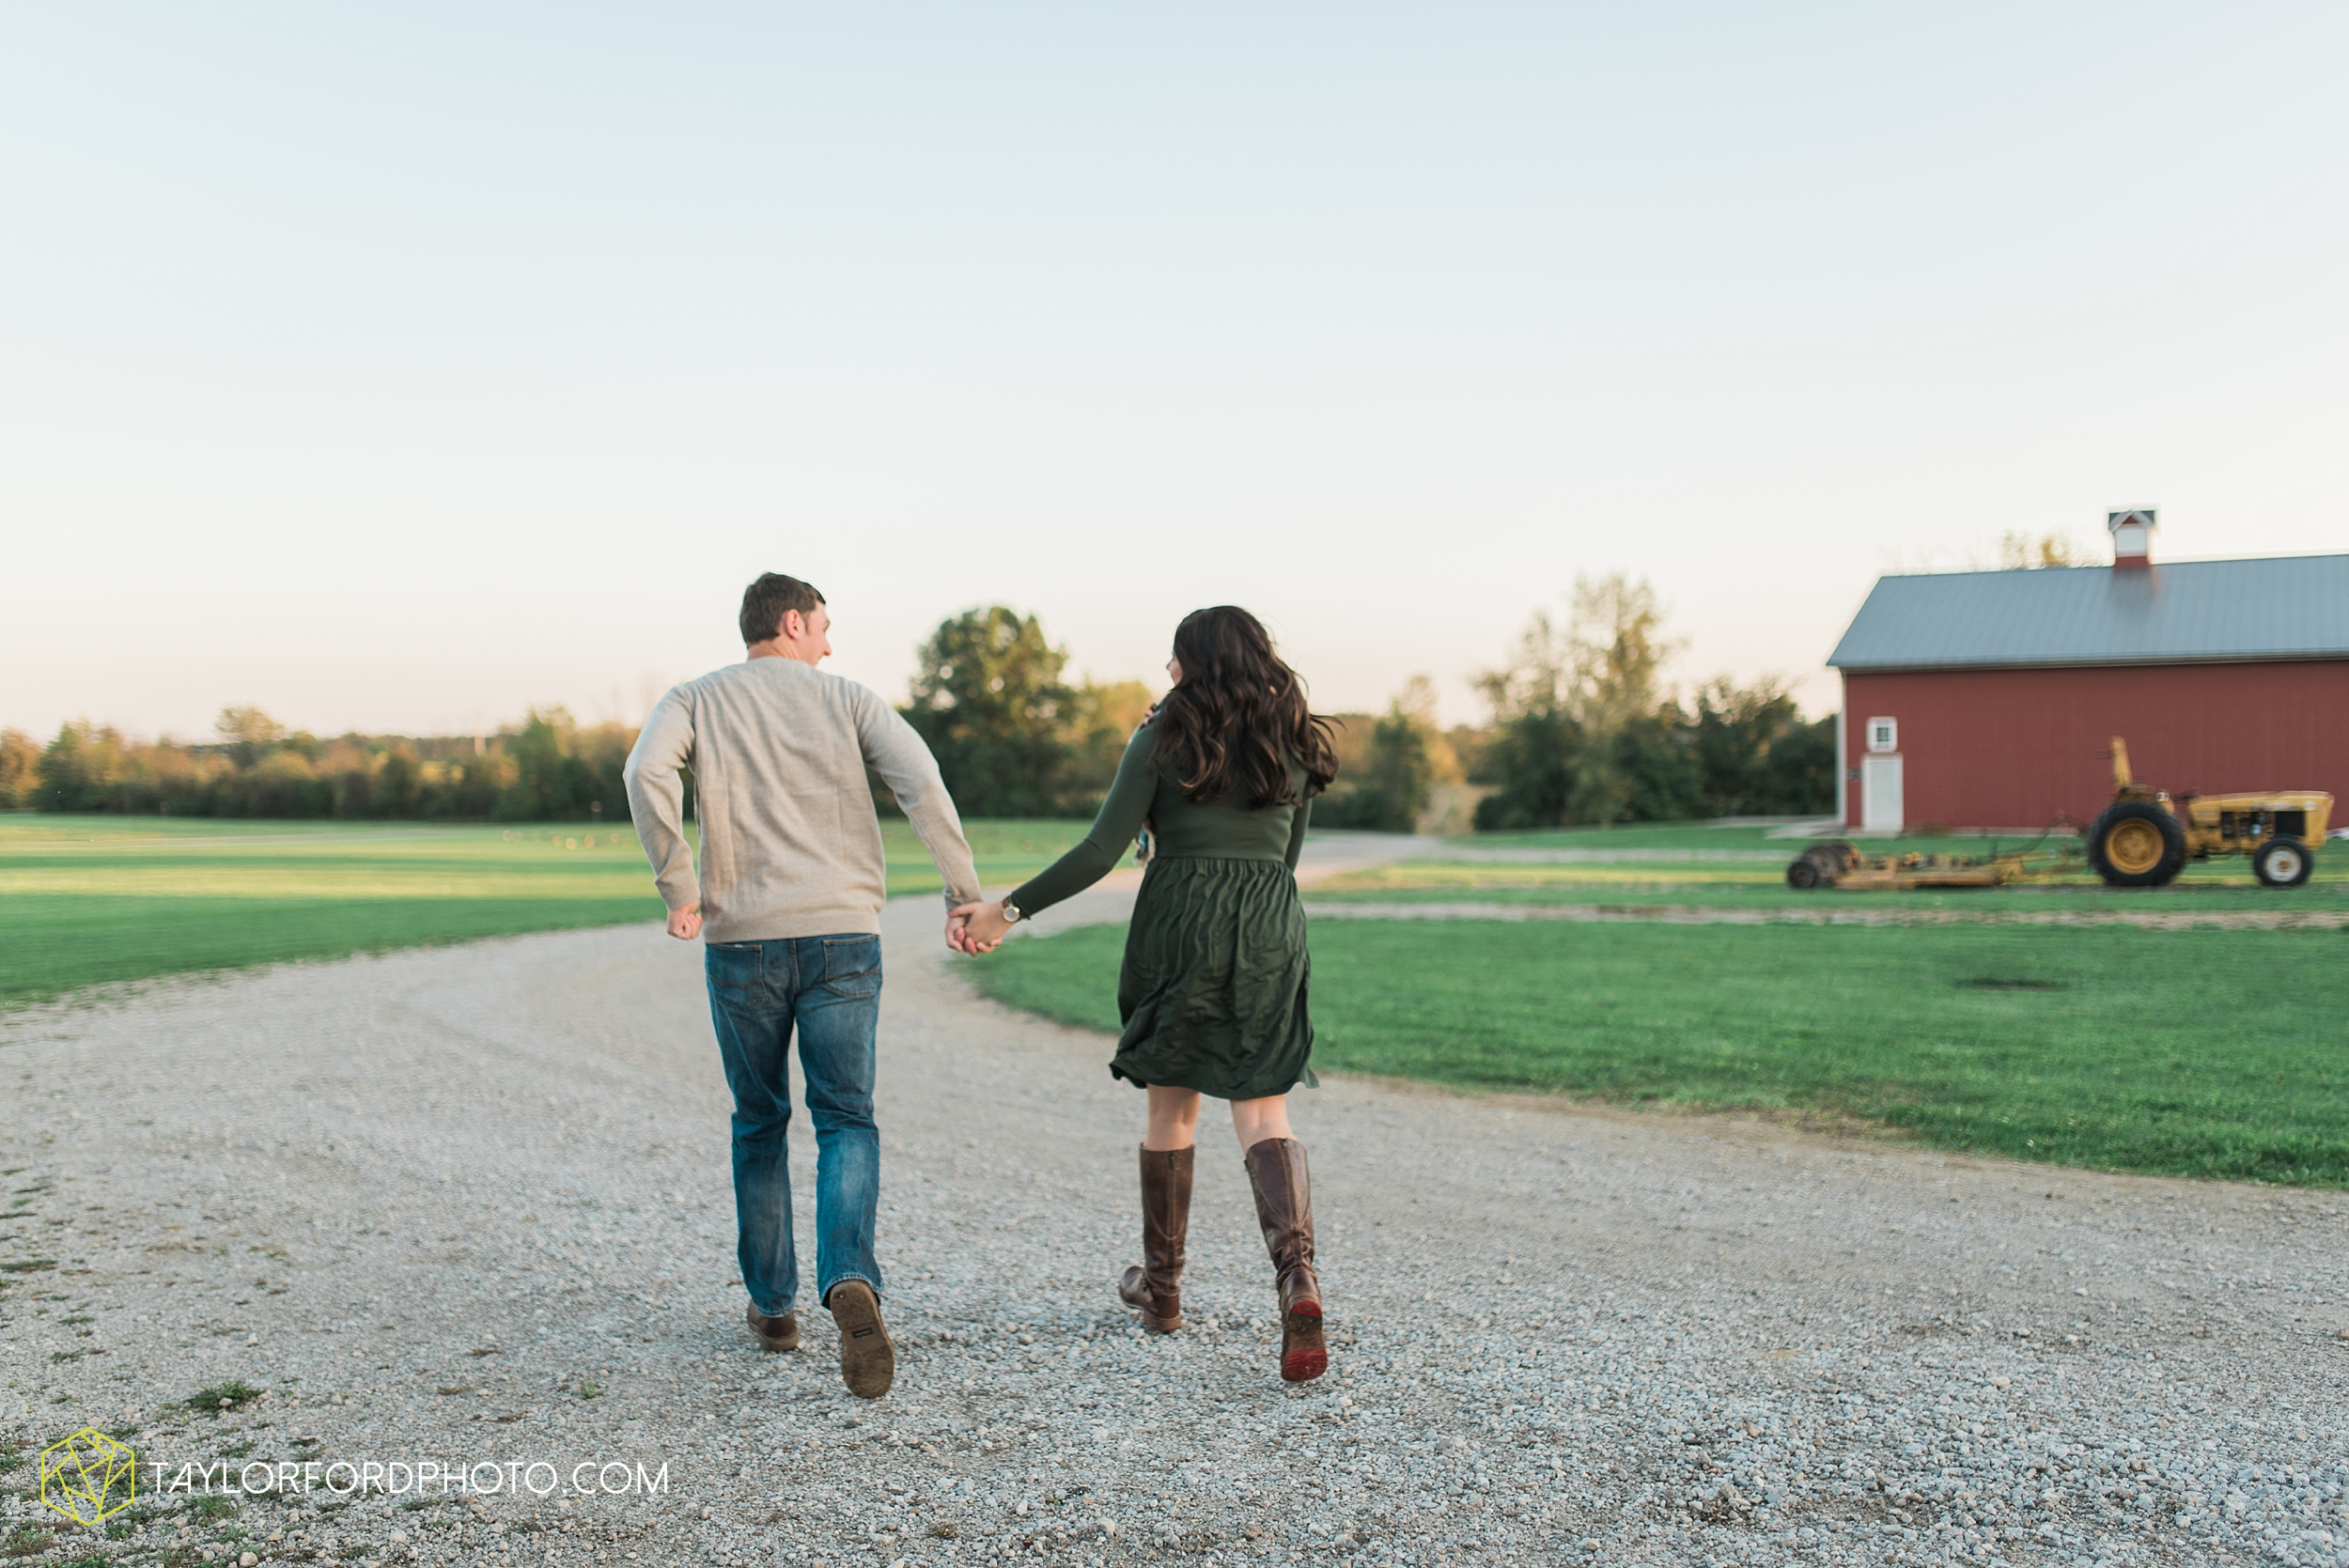 fort-wayne-indiana-engagement-wedding-photographer-Taylor-Ford-Photography-salomon-farm-park_3587.jpg